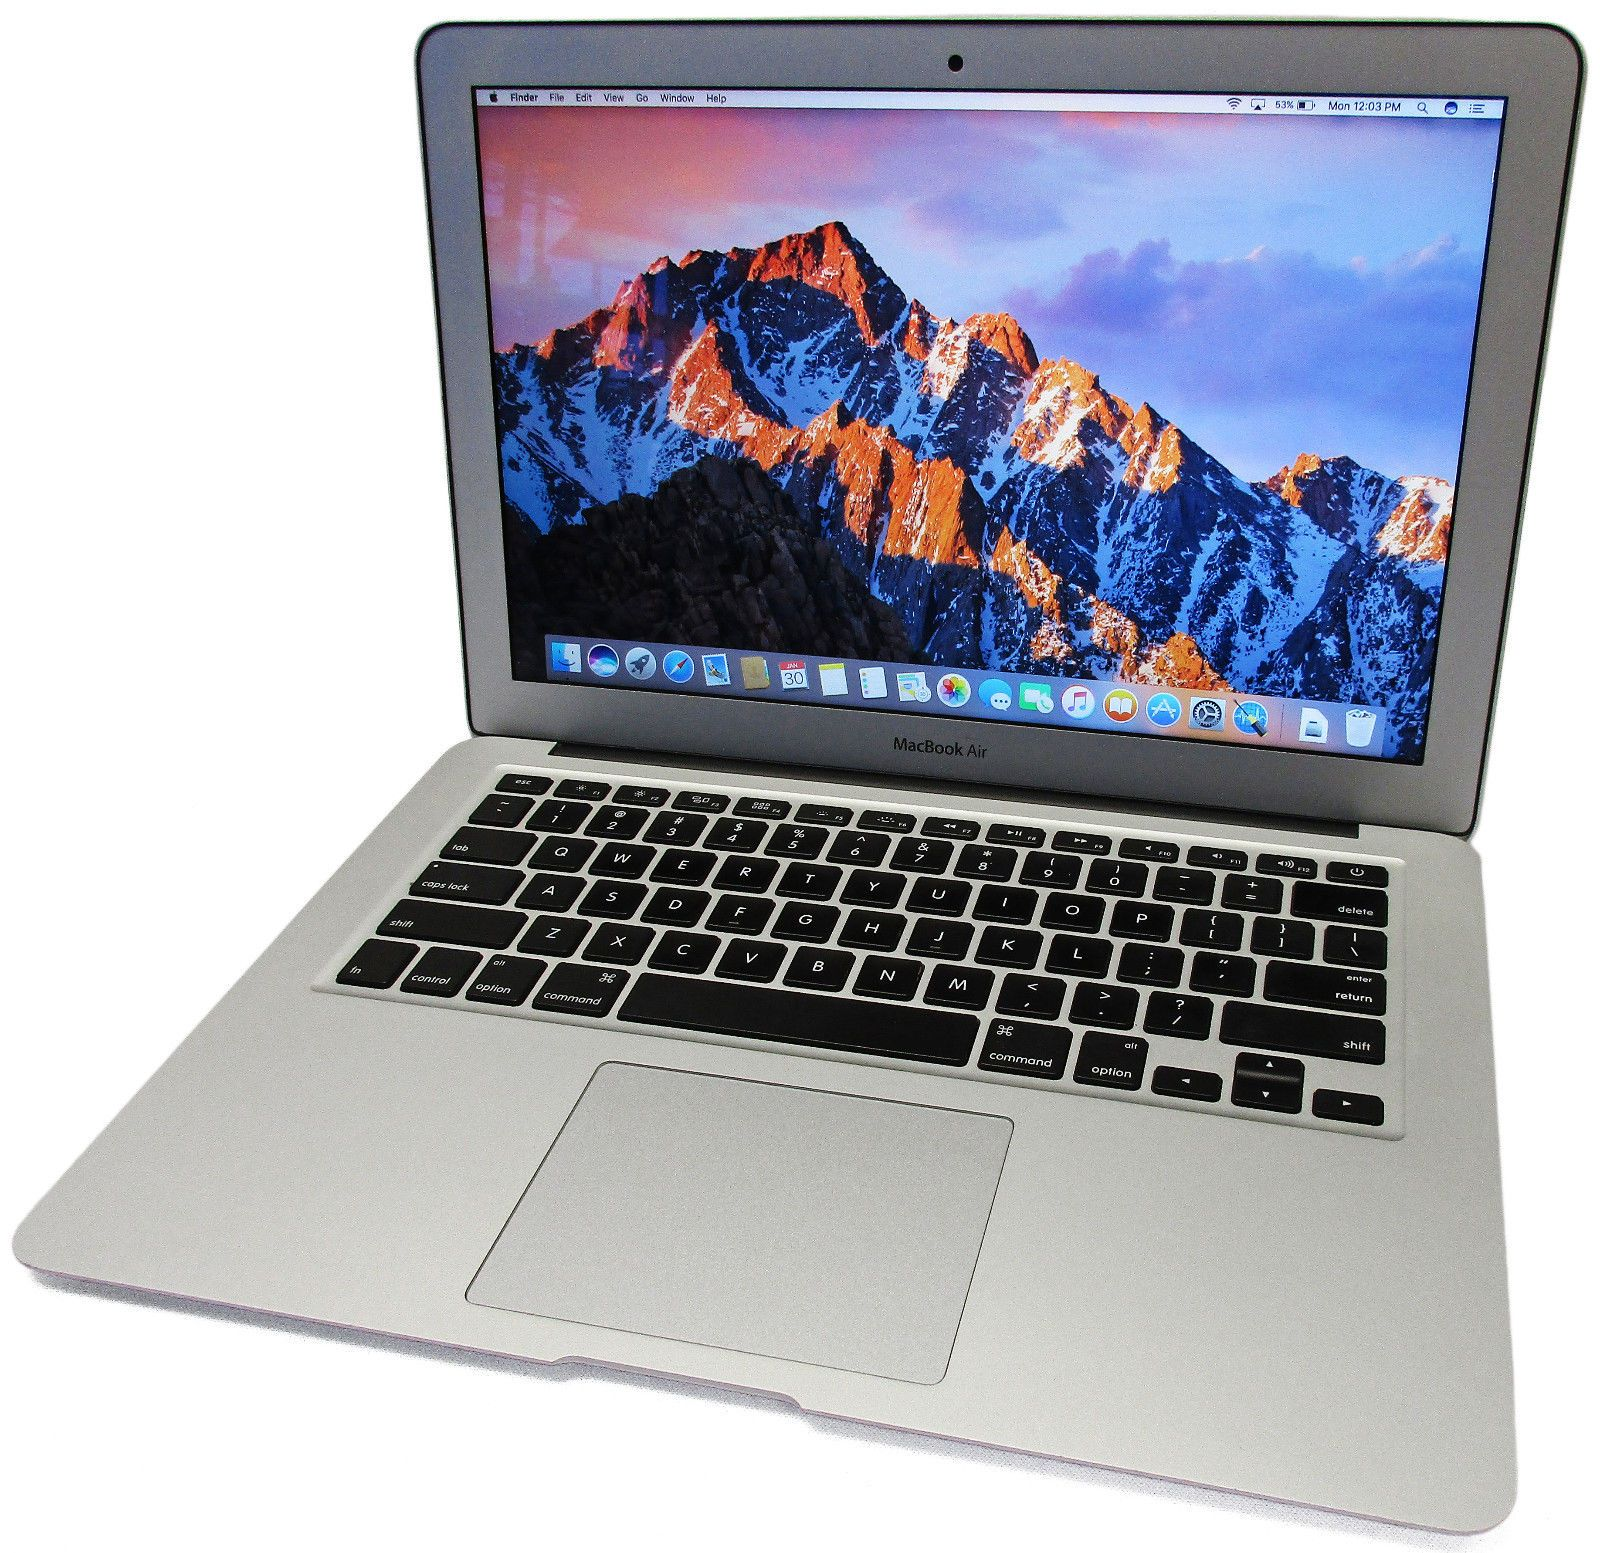 Pin by No Betr on Apple MacBook Pro Core i5 2.5GHz 4GB RAM